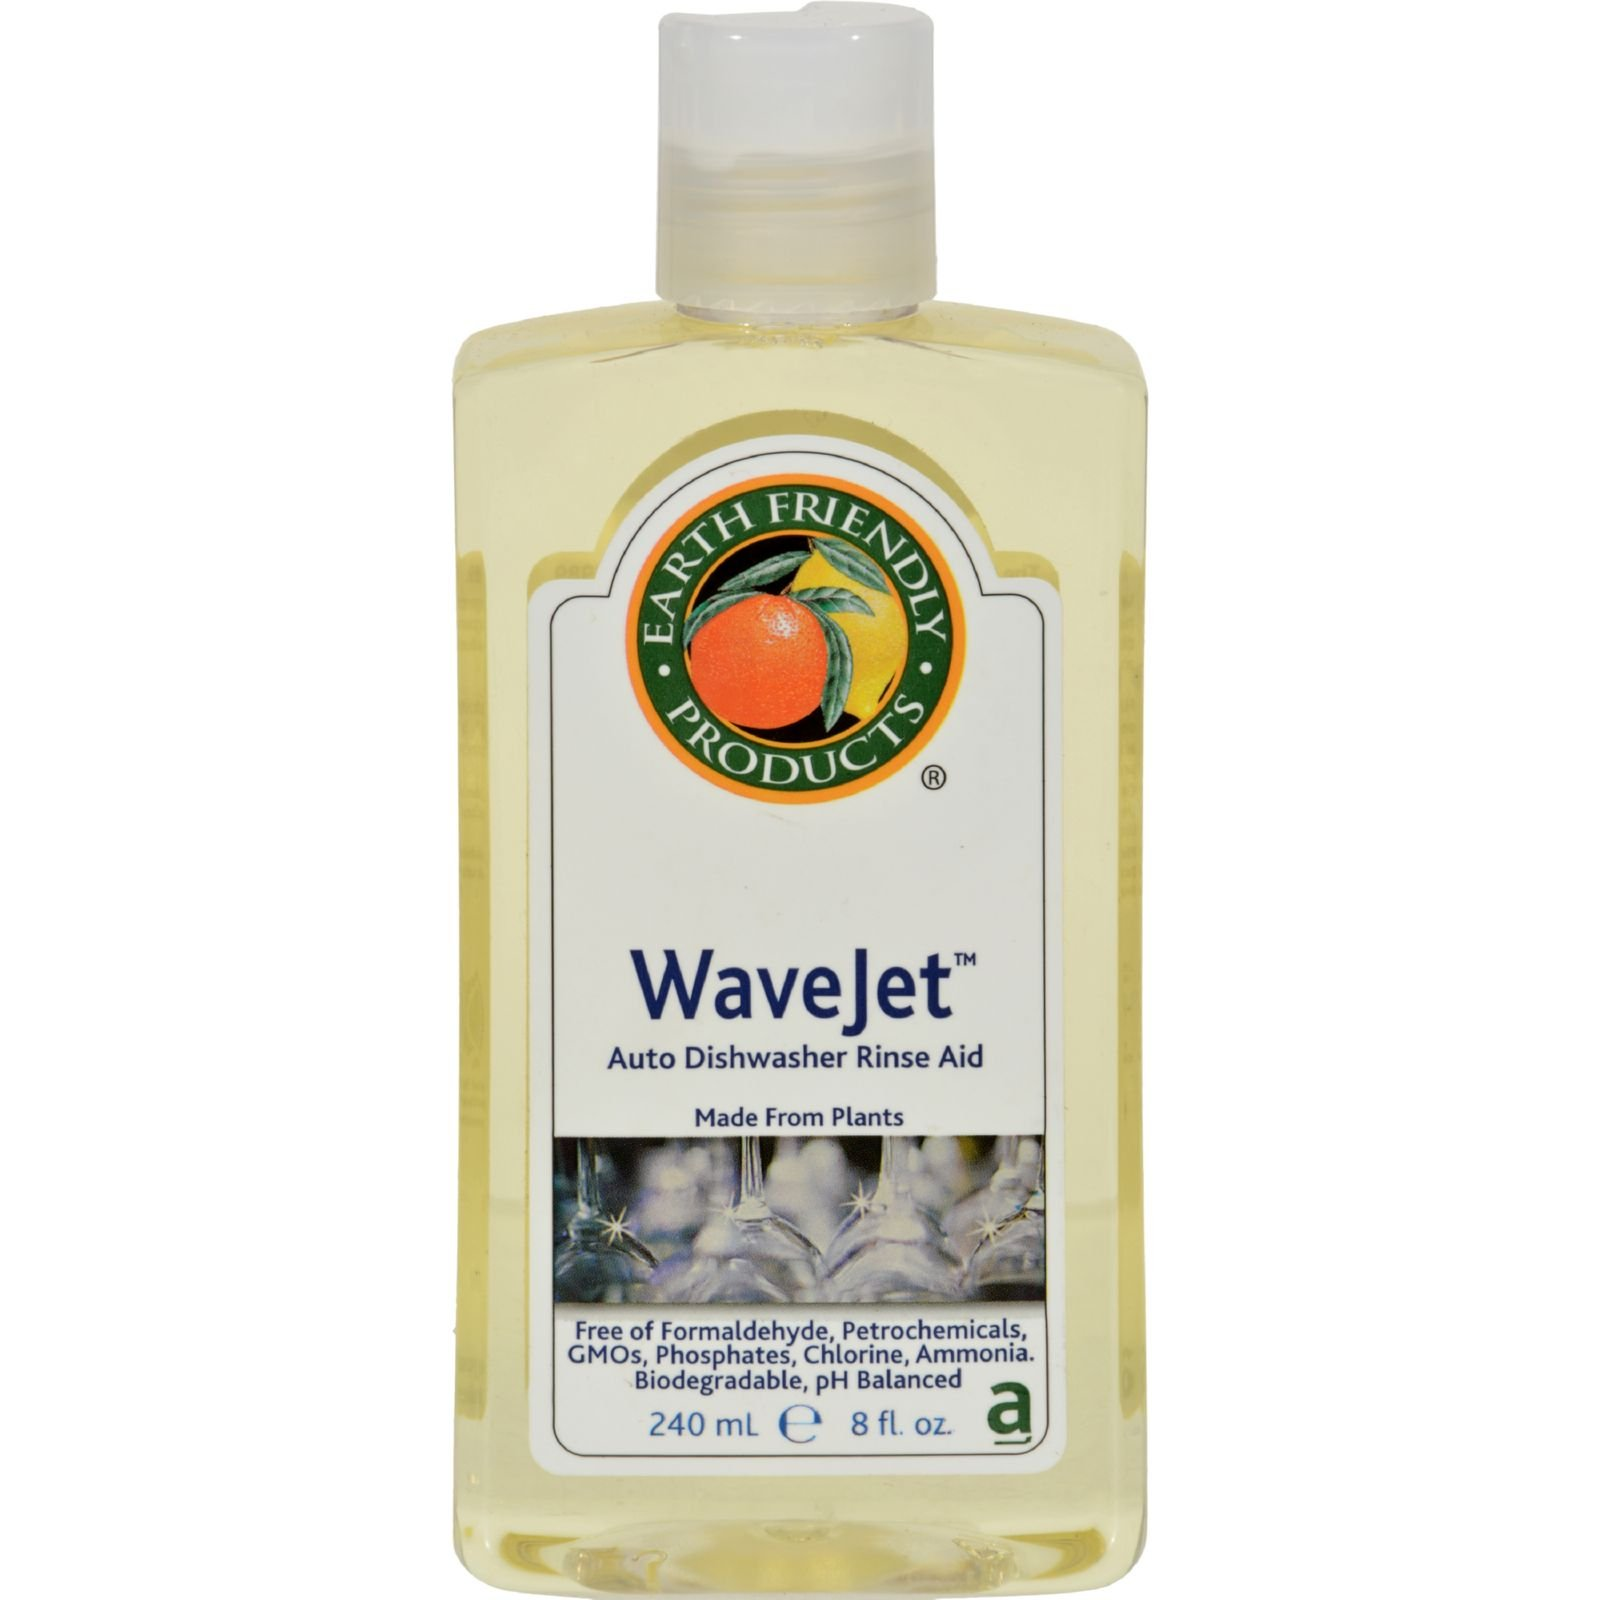 Earth Friendly Wave Jet Auto Dishwasher Rinse Aid - Made from Plant - 8 fl oz (Pack of 4)